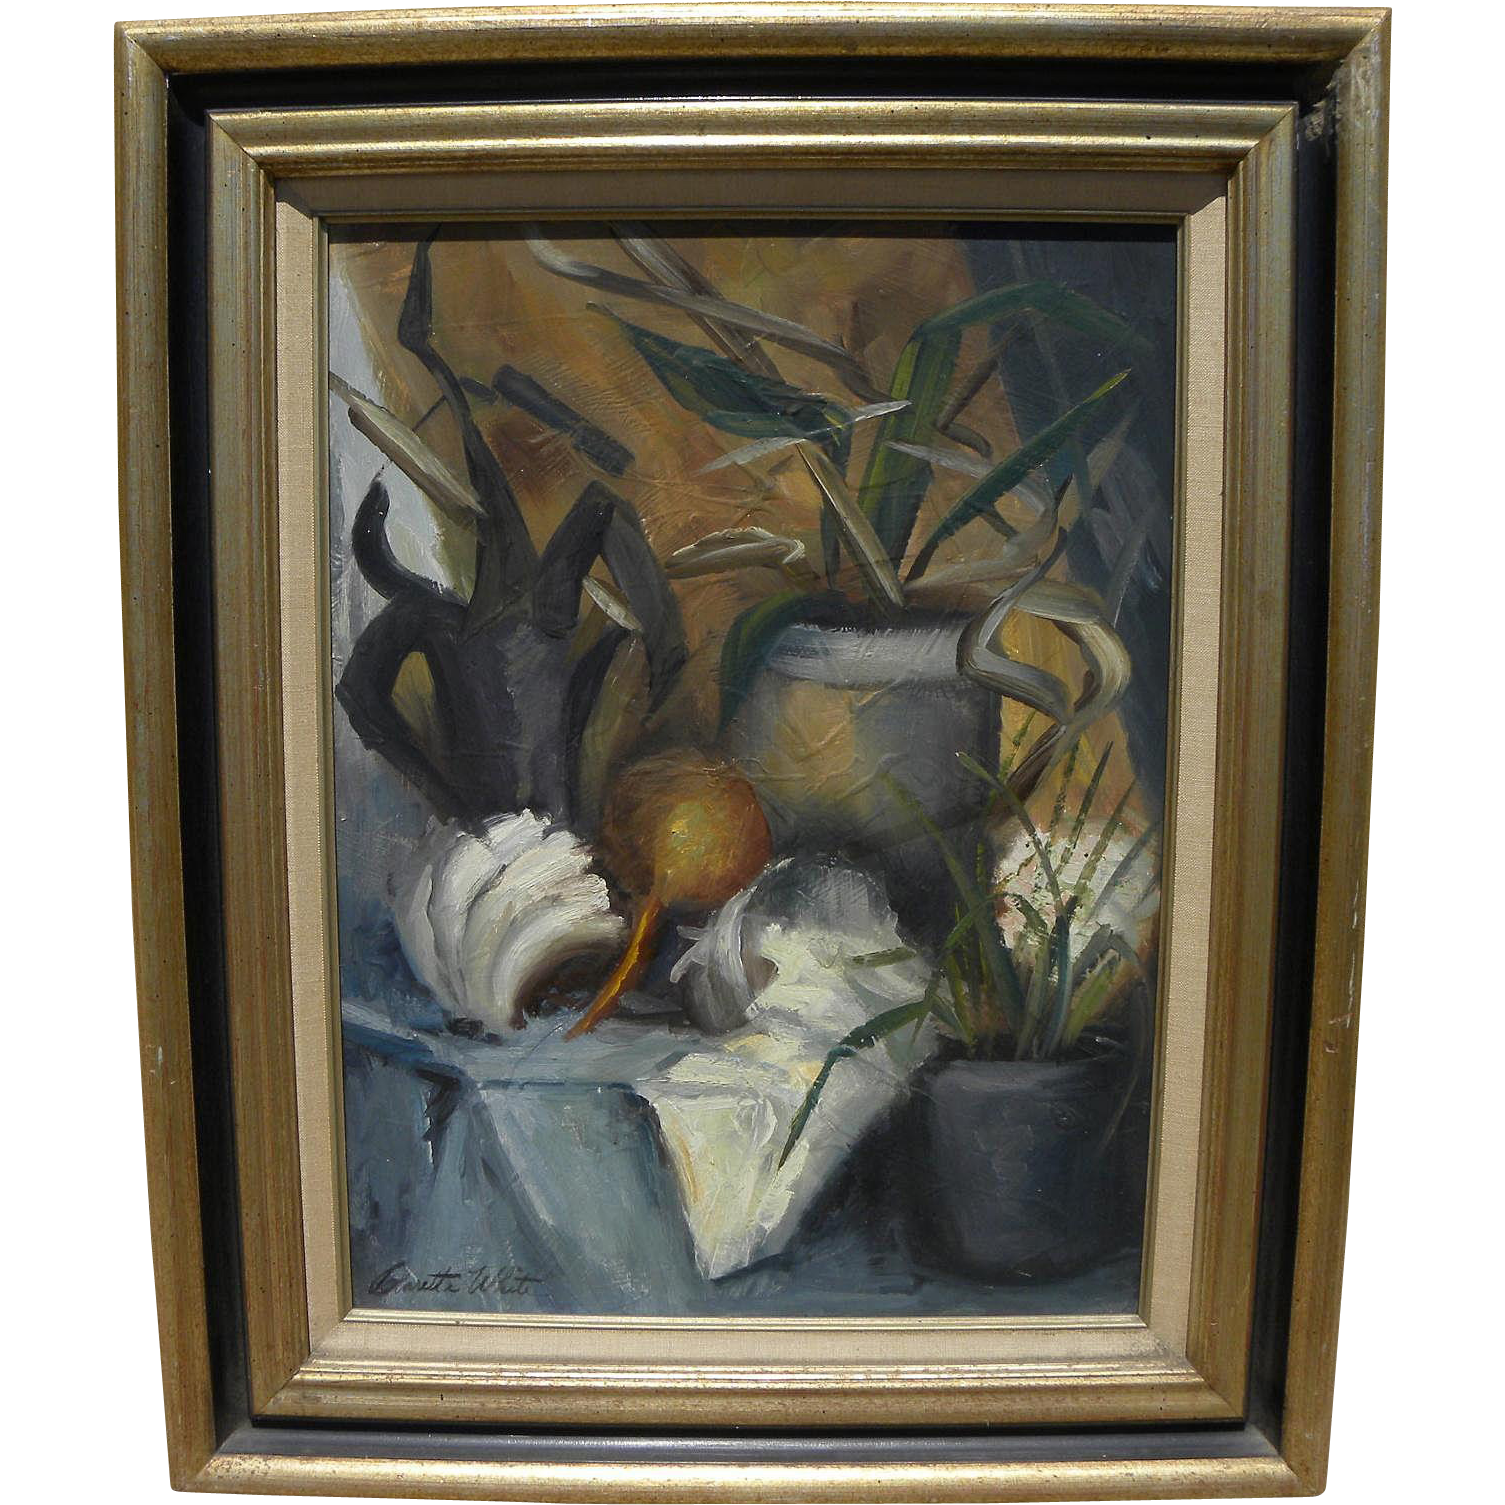 CLARETTA WHITE (c. 1915-2002) impressionist still life painting by California artist